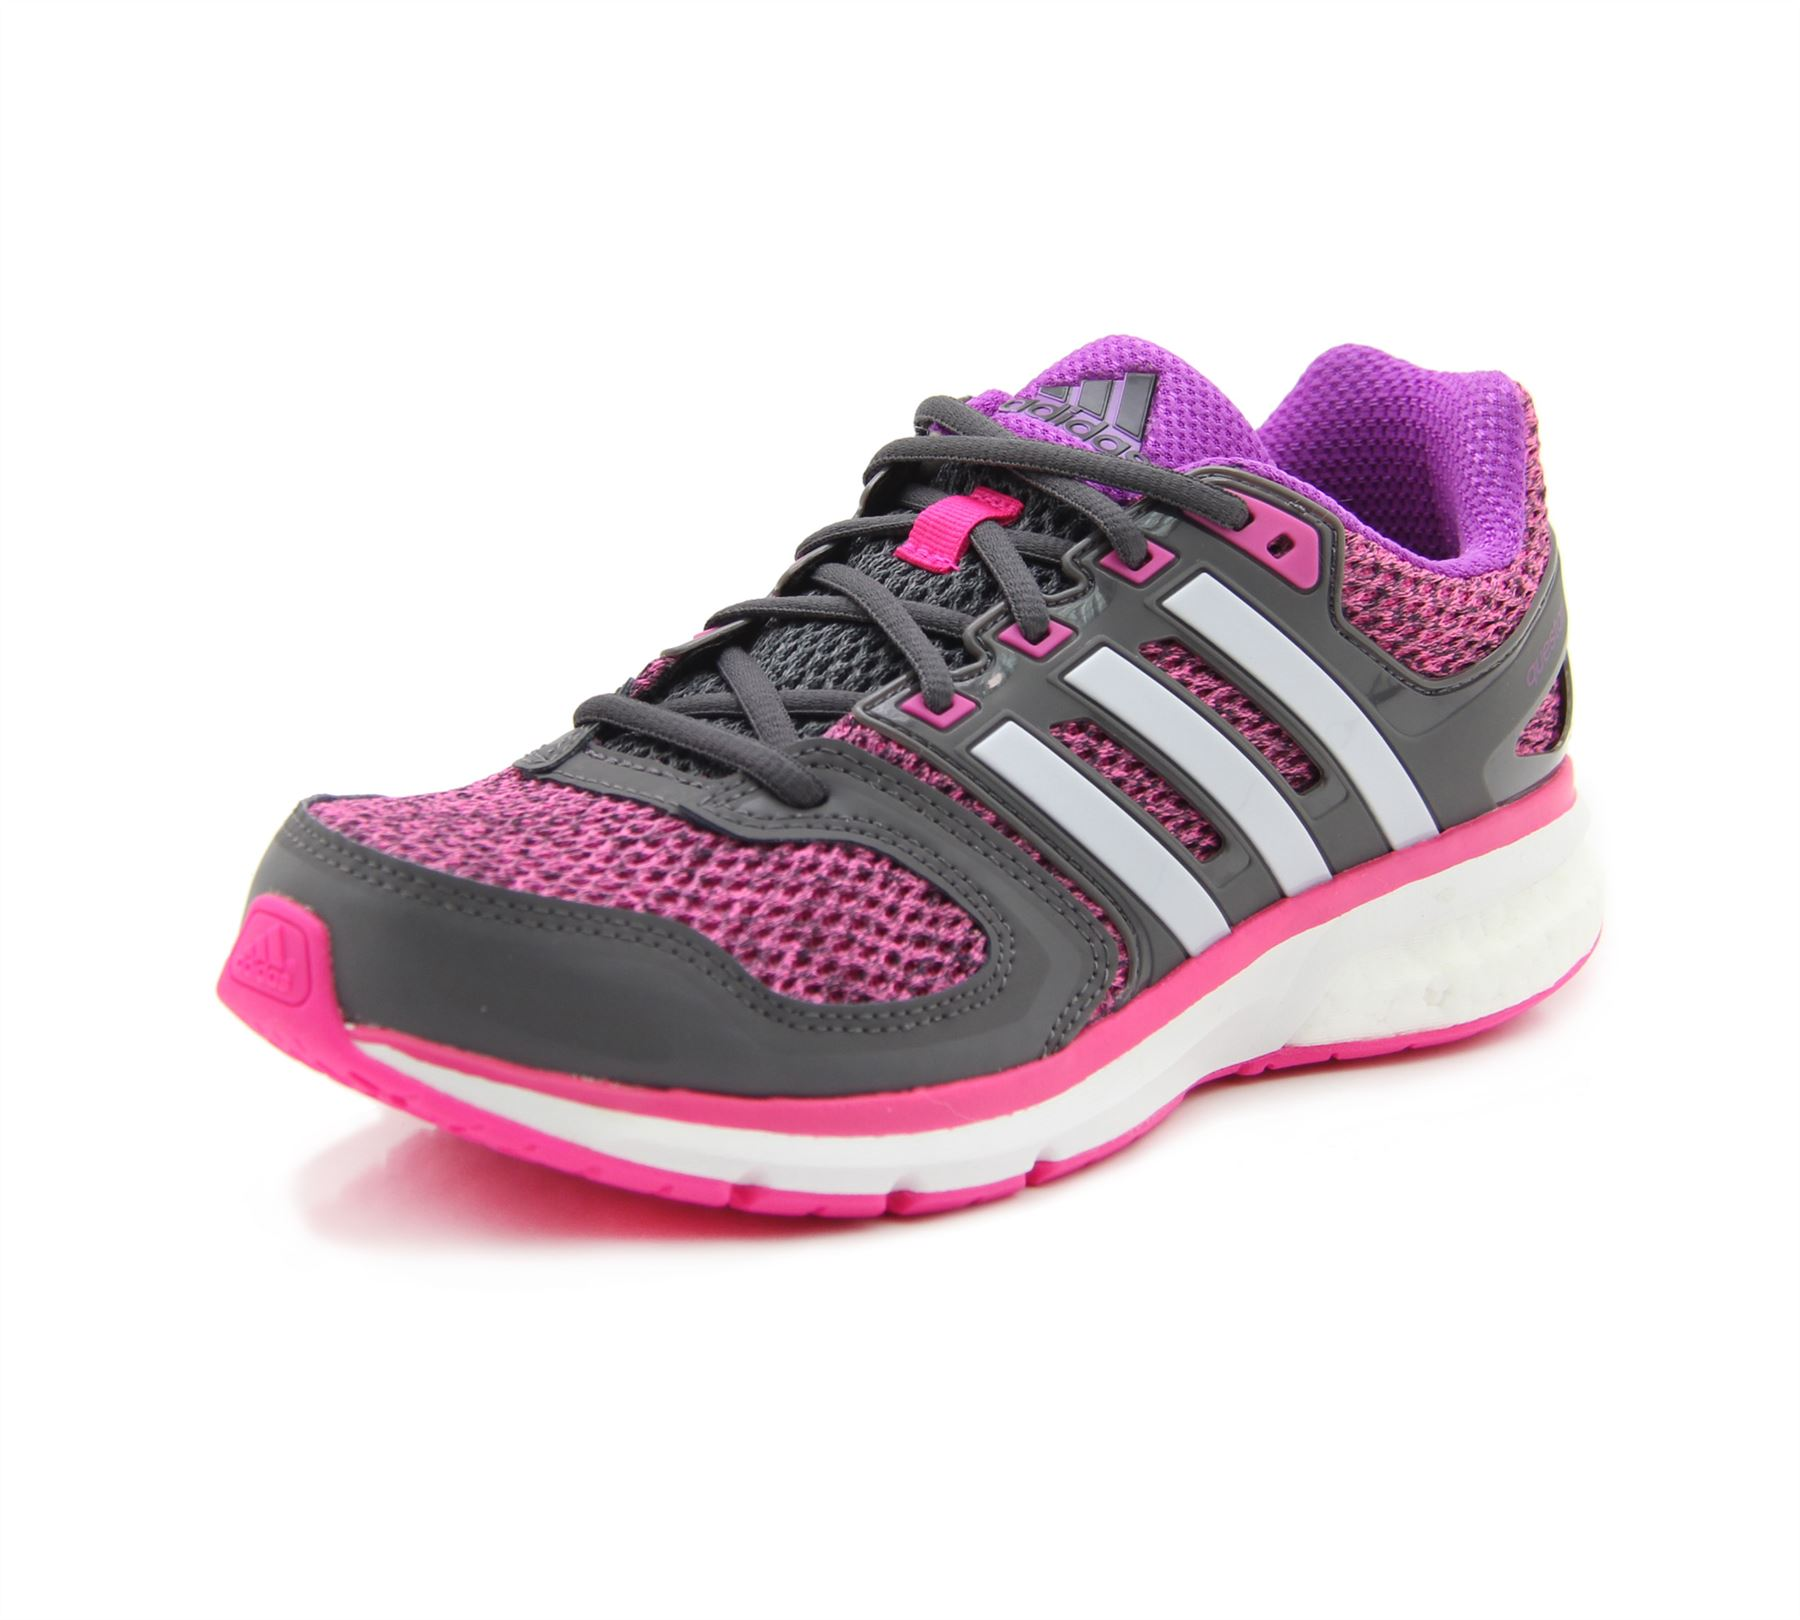 ... adidas Questar Boost Running Shoes Womens Pink Grey Purple Fitness  Trainers ... e567e6d7b2